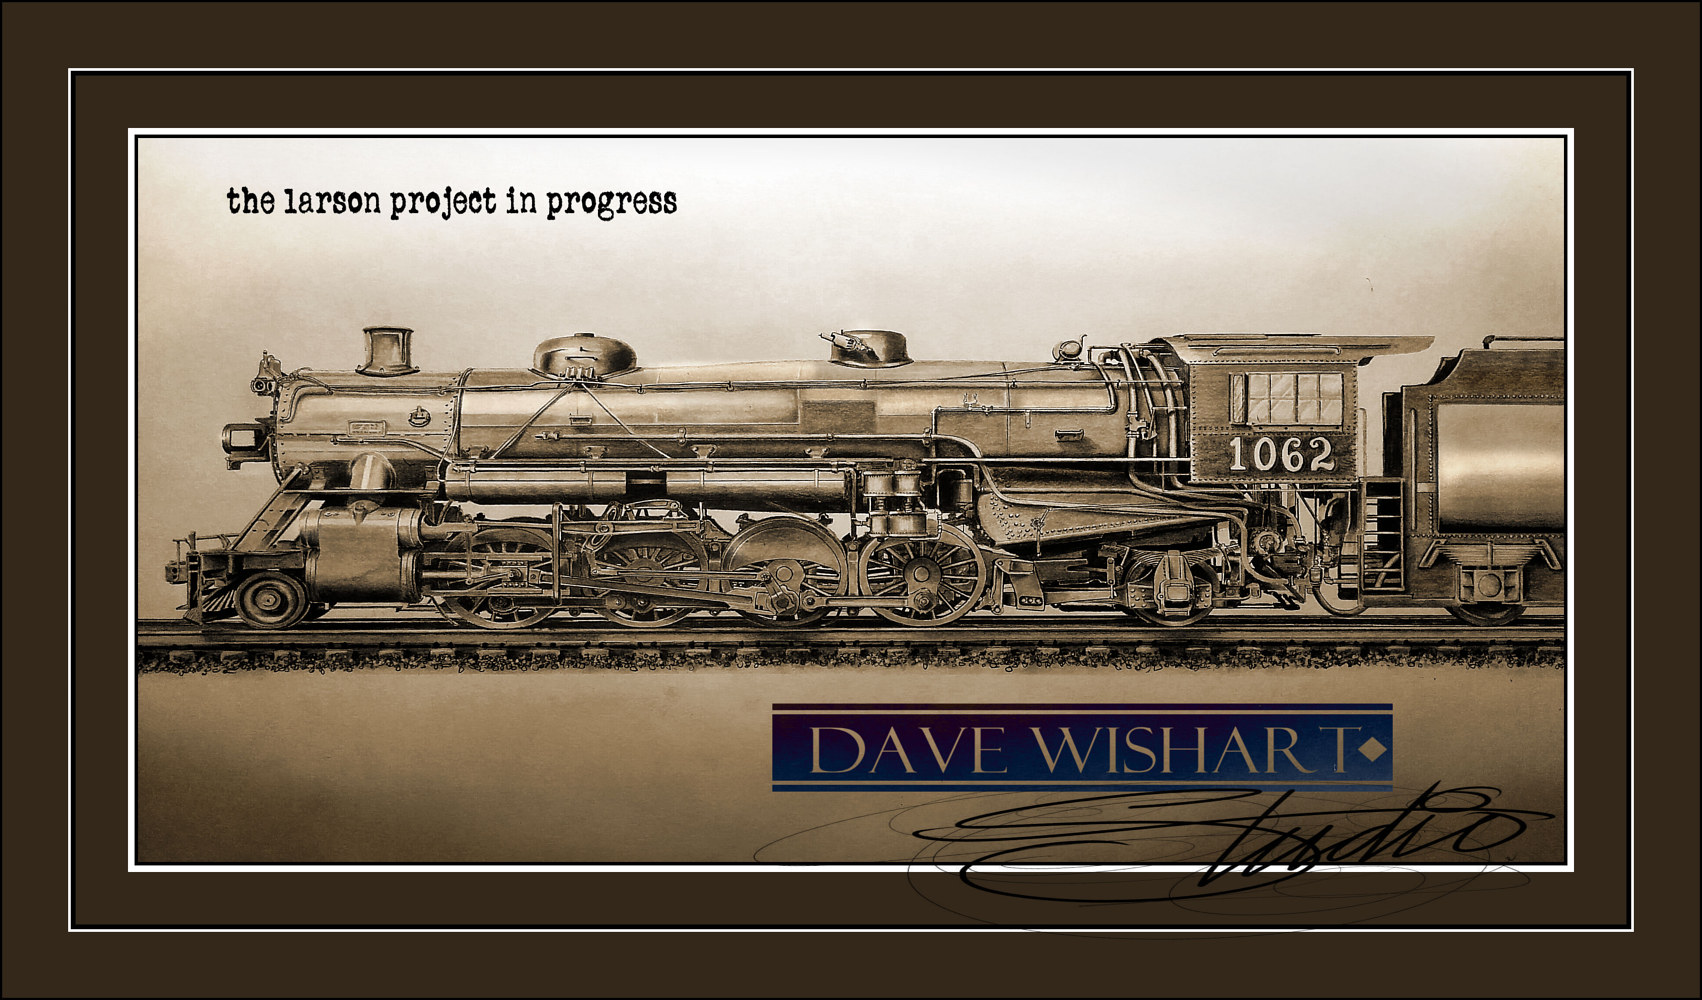 335Page by Dave Wishart